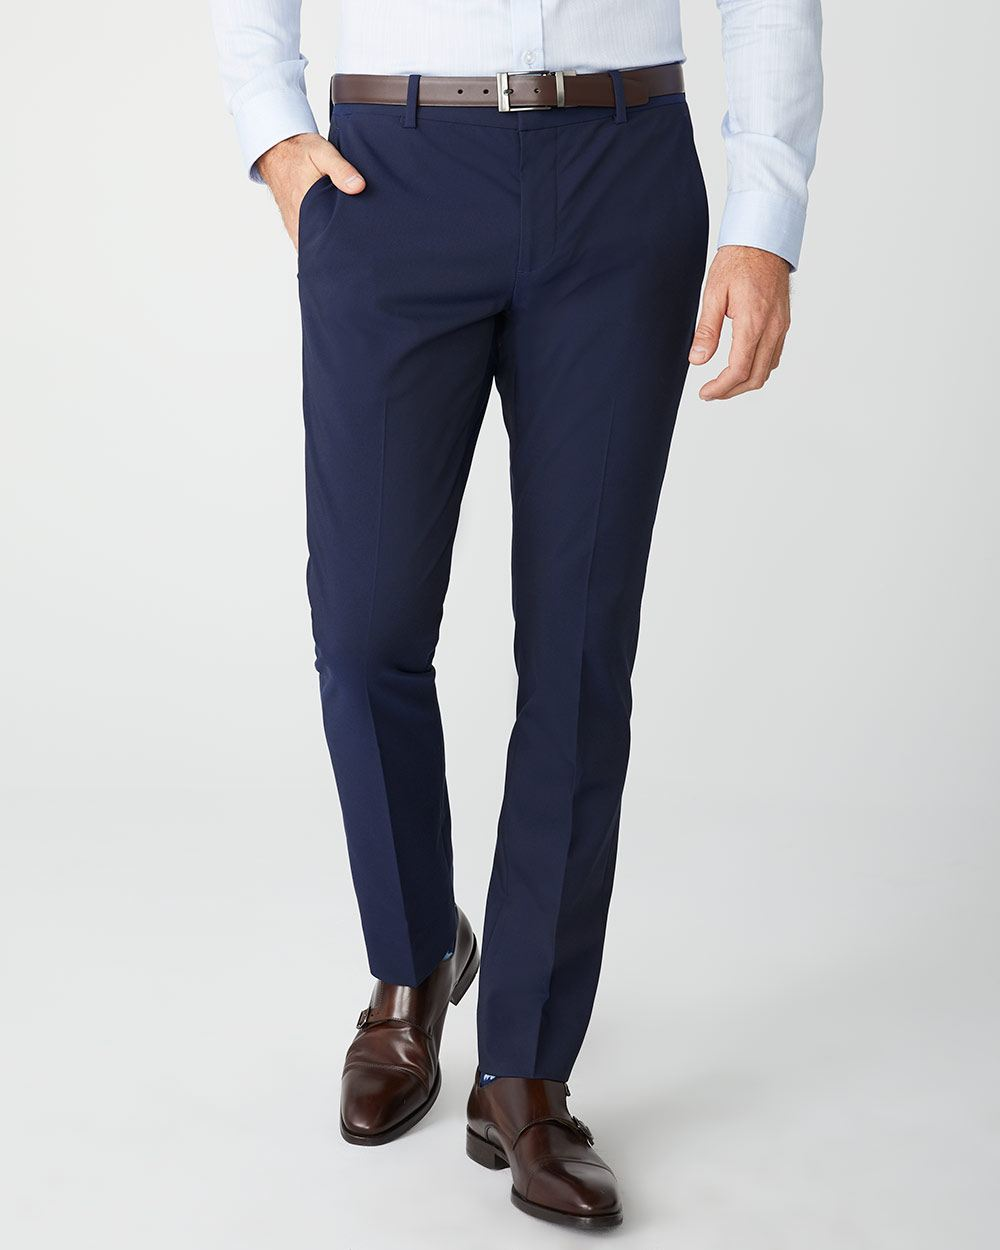 Slim Fit E-Tech (TM) Navy suit Pant